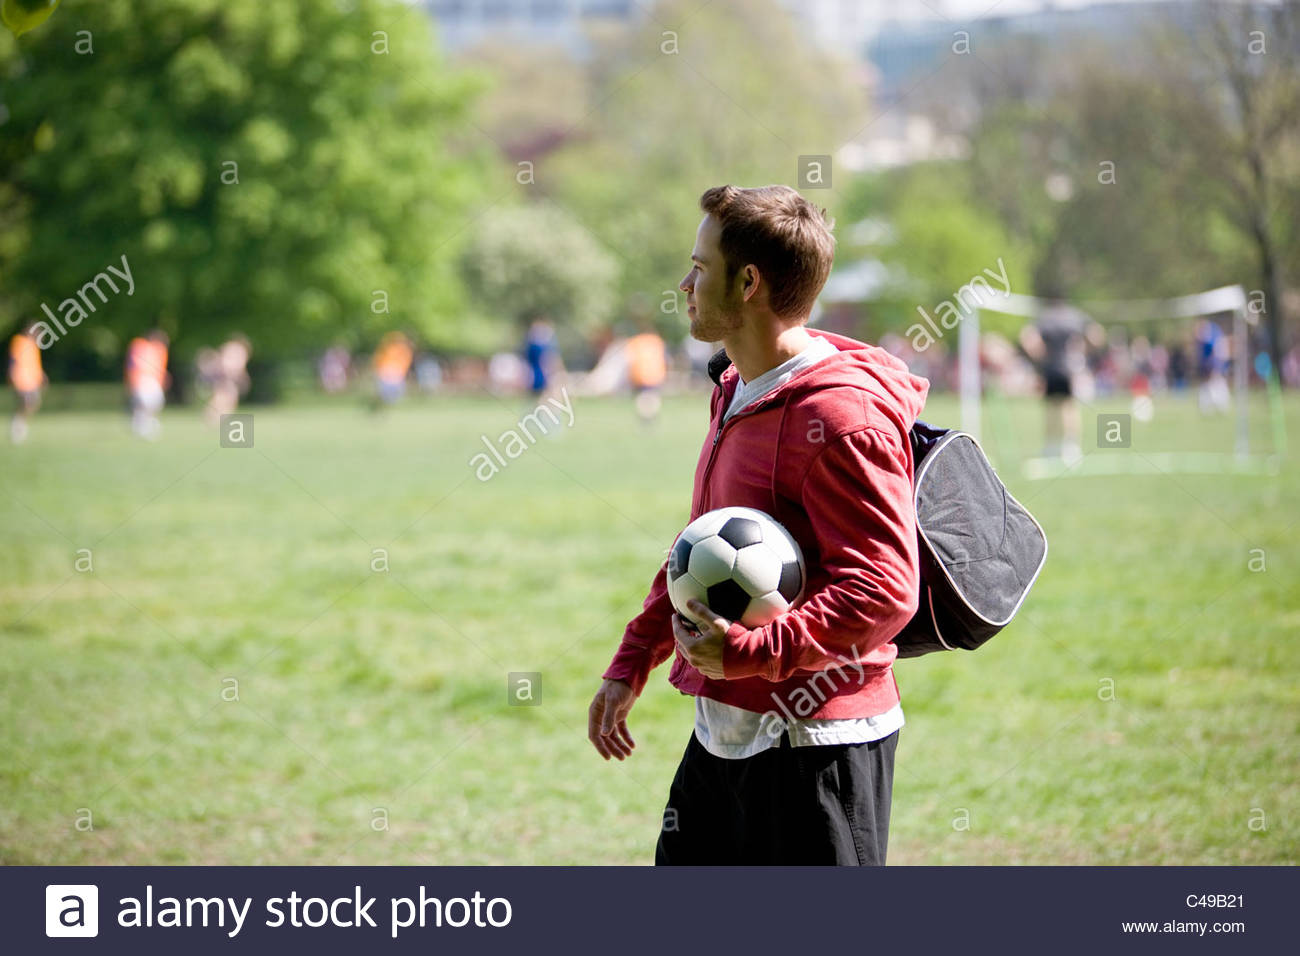 A young man standing in the park, carrying a football and a sports bag - Stock Image